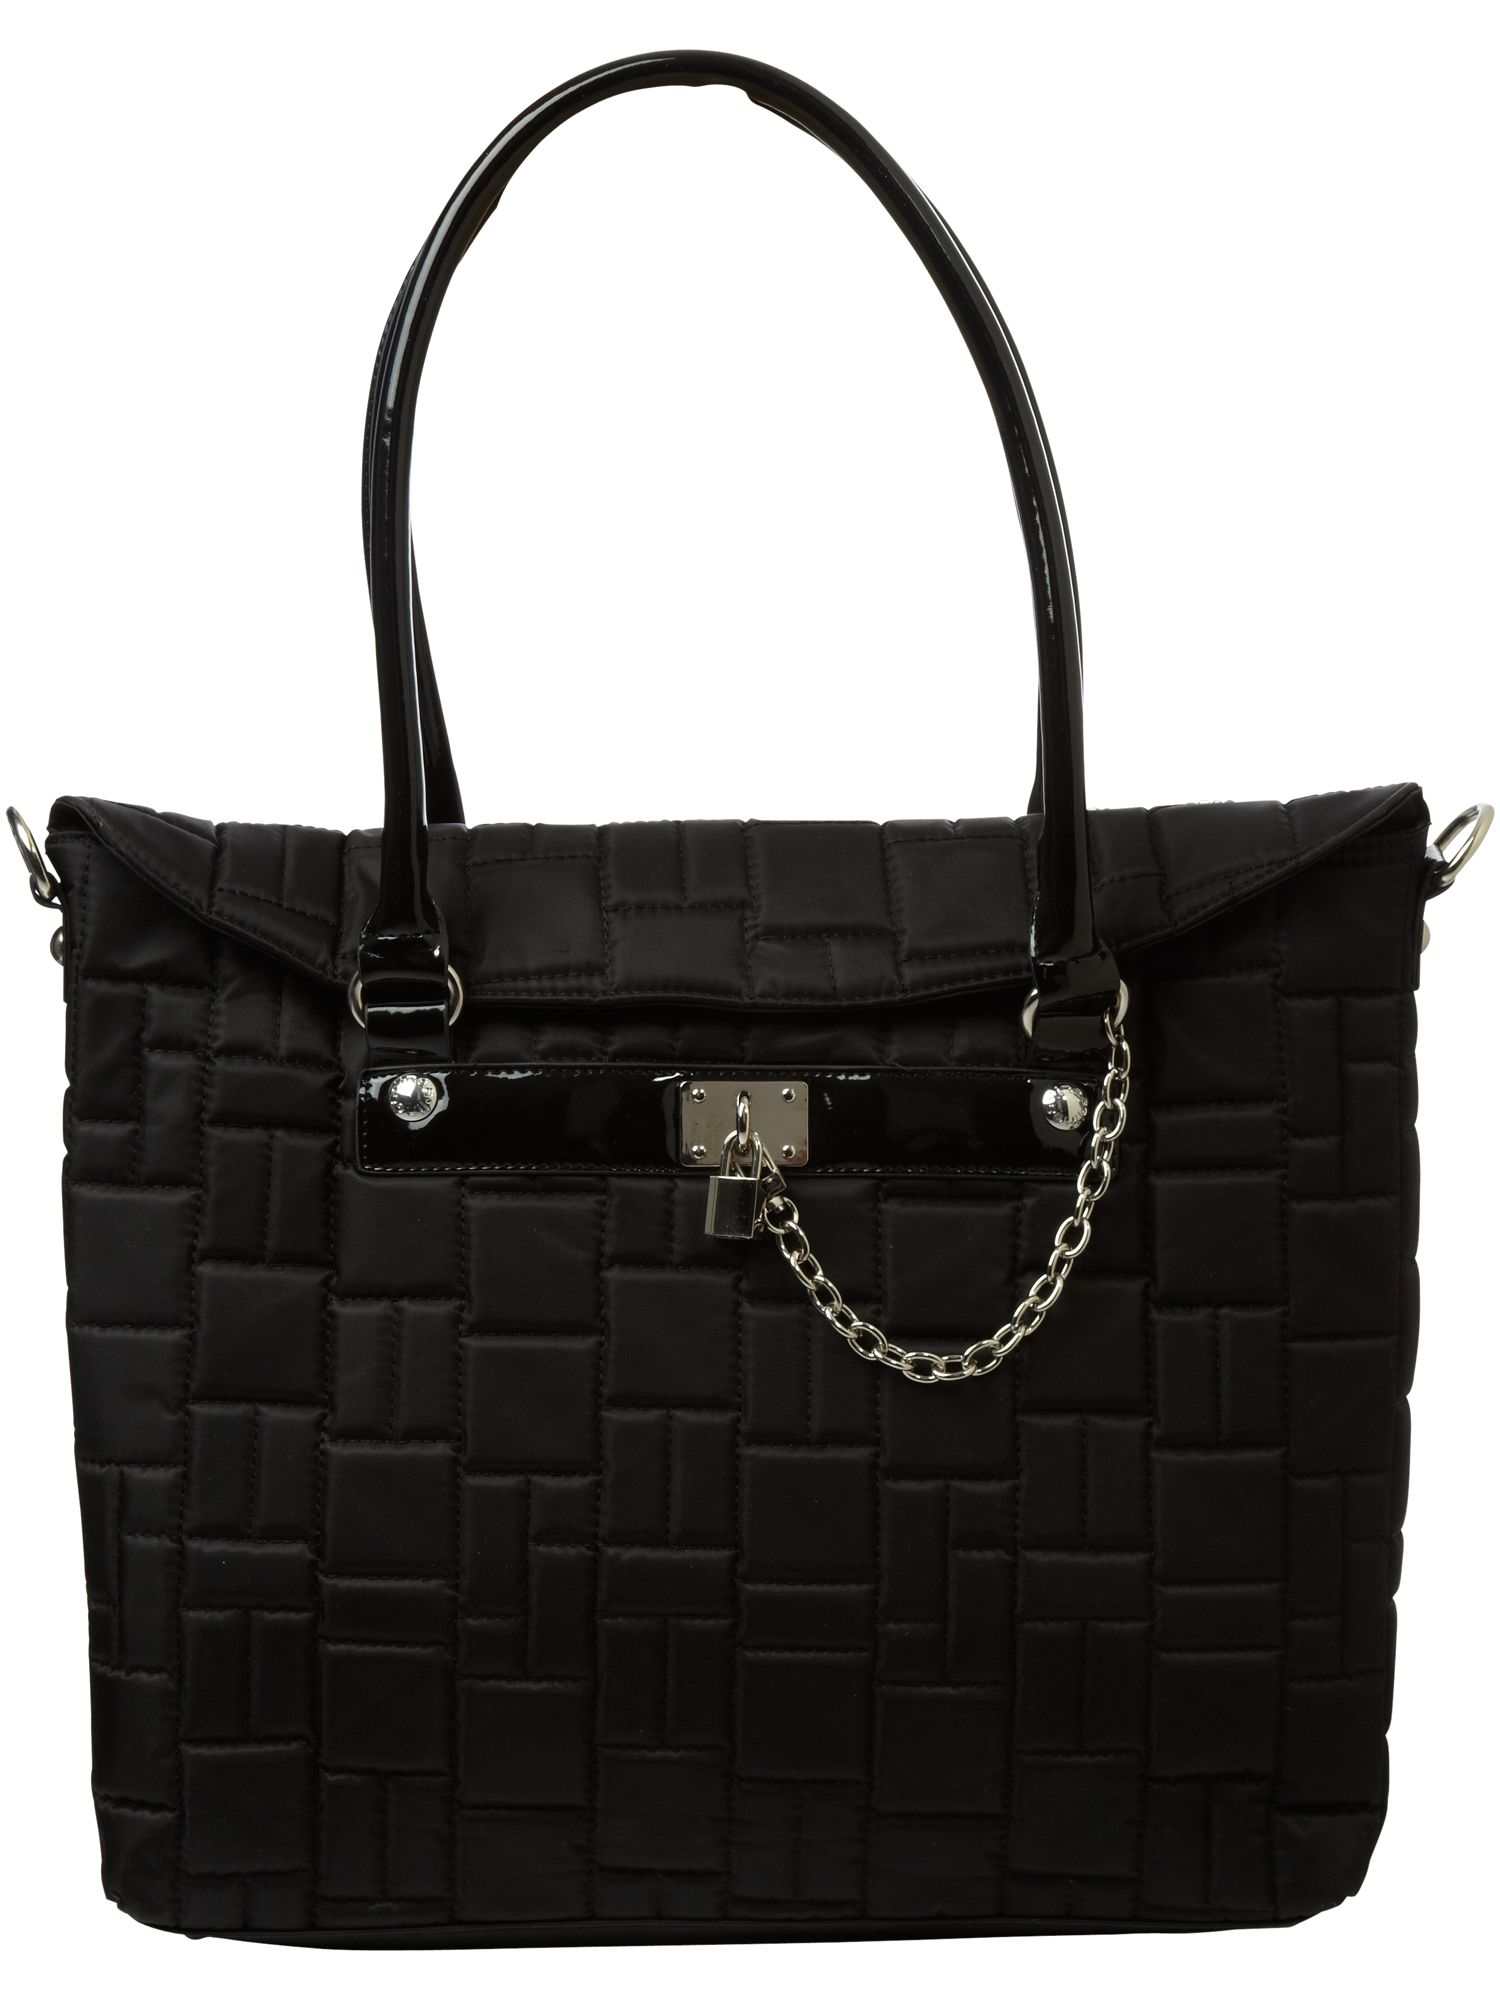 Linea Black nylon quilted tote bag product image